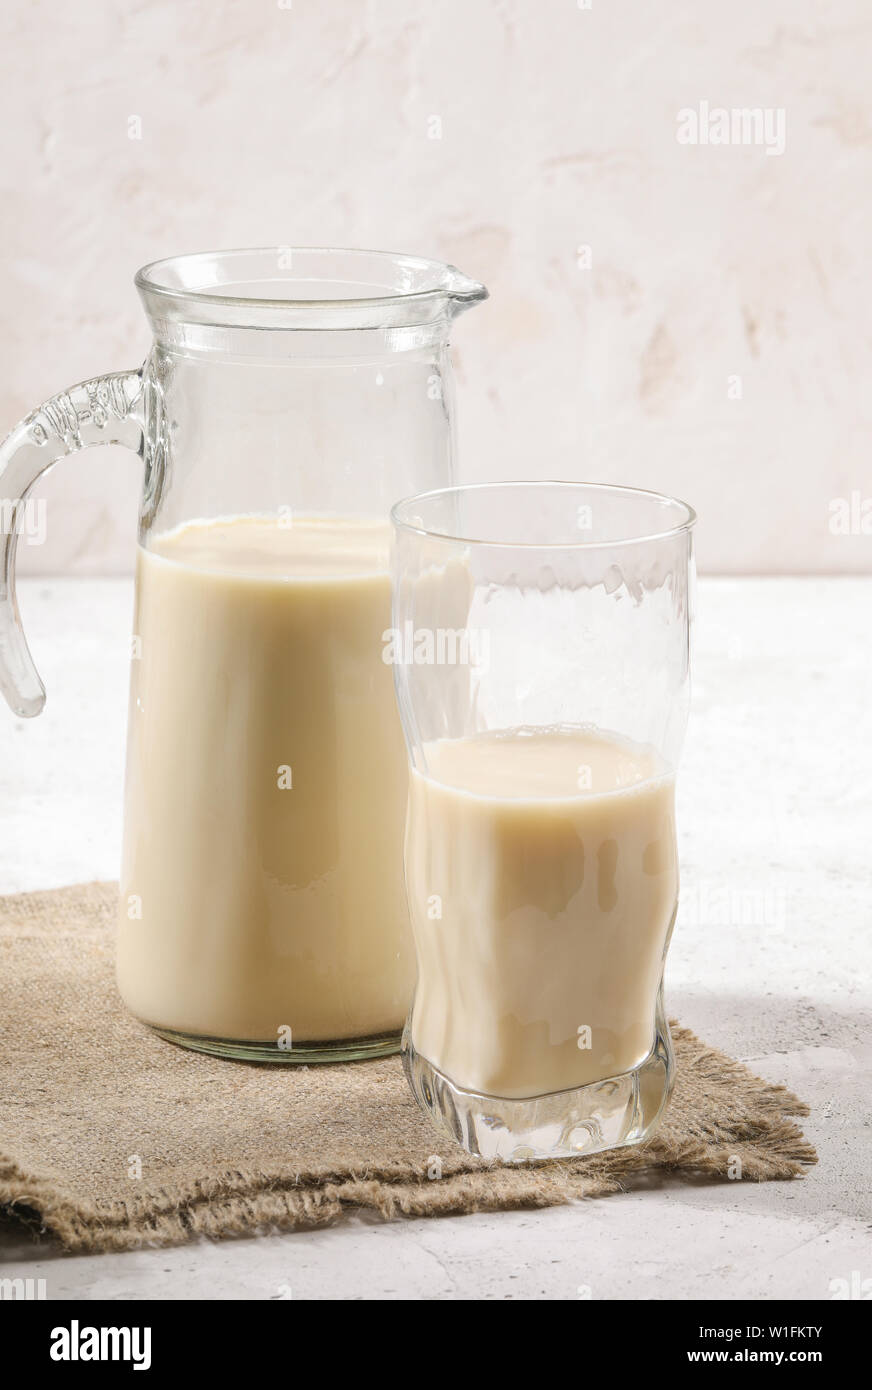 Close-up decanter and glass of oat milk on burlup napkin on white background. - Stock Image